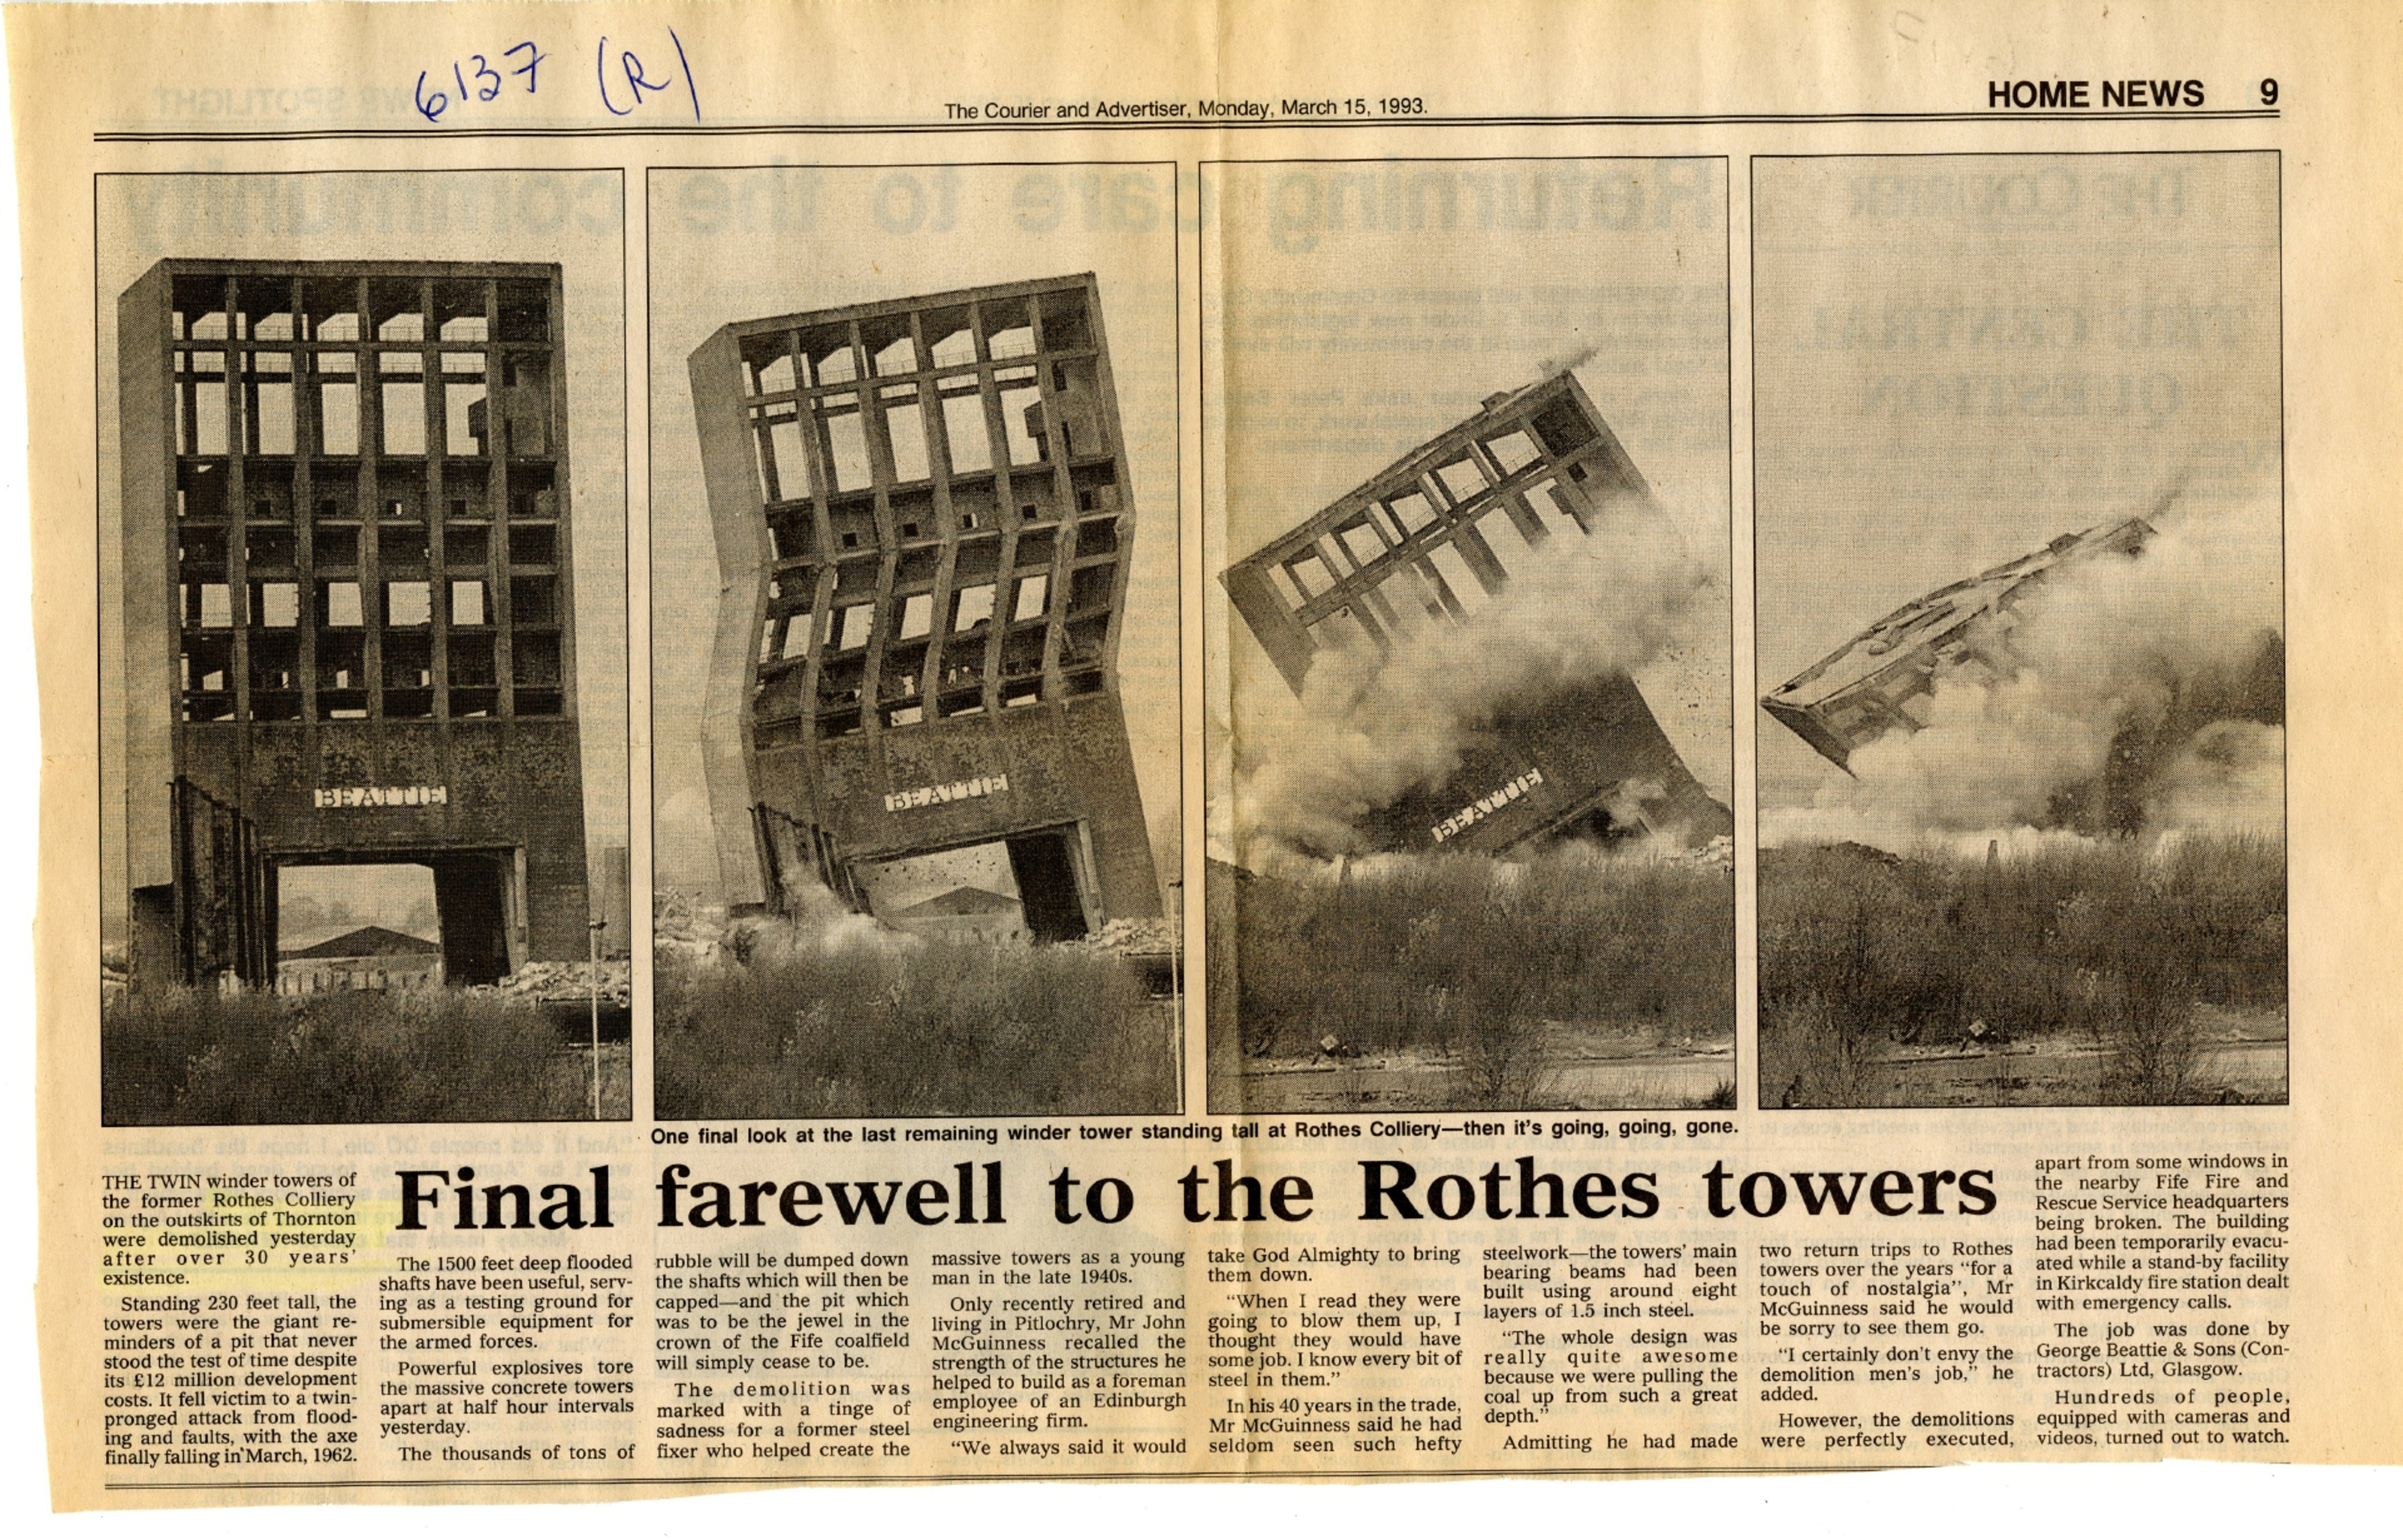 What goes up, must come down. The Courier records the demolition of the pit's towers in March 1993.